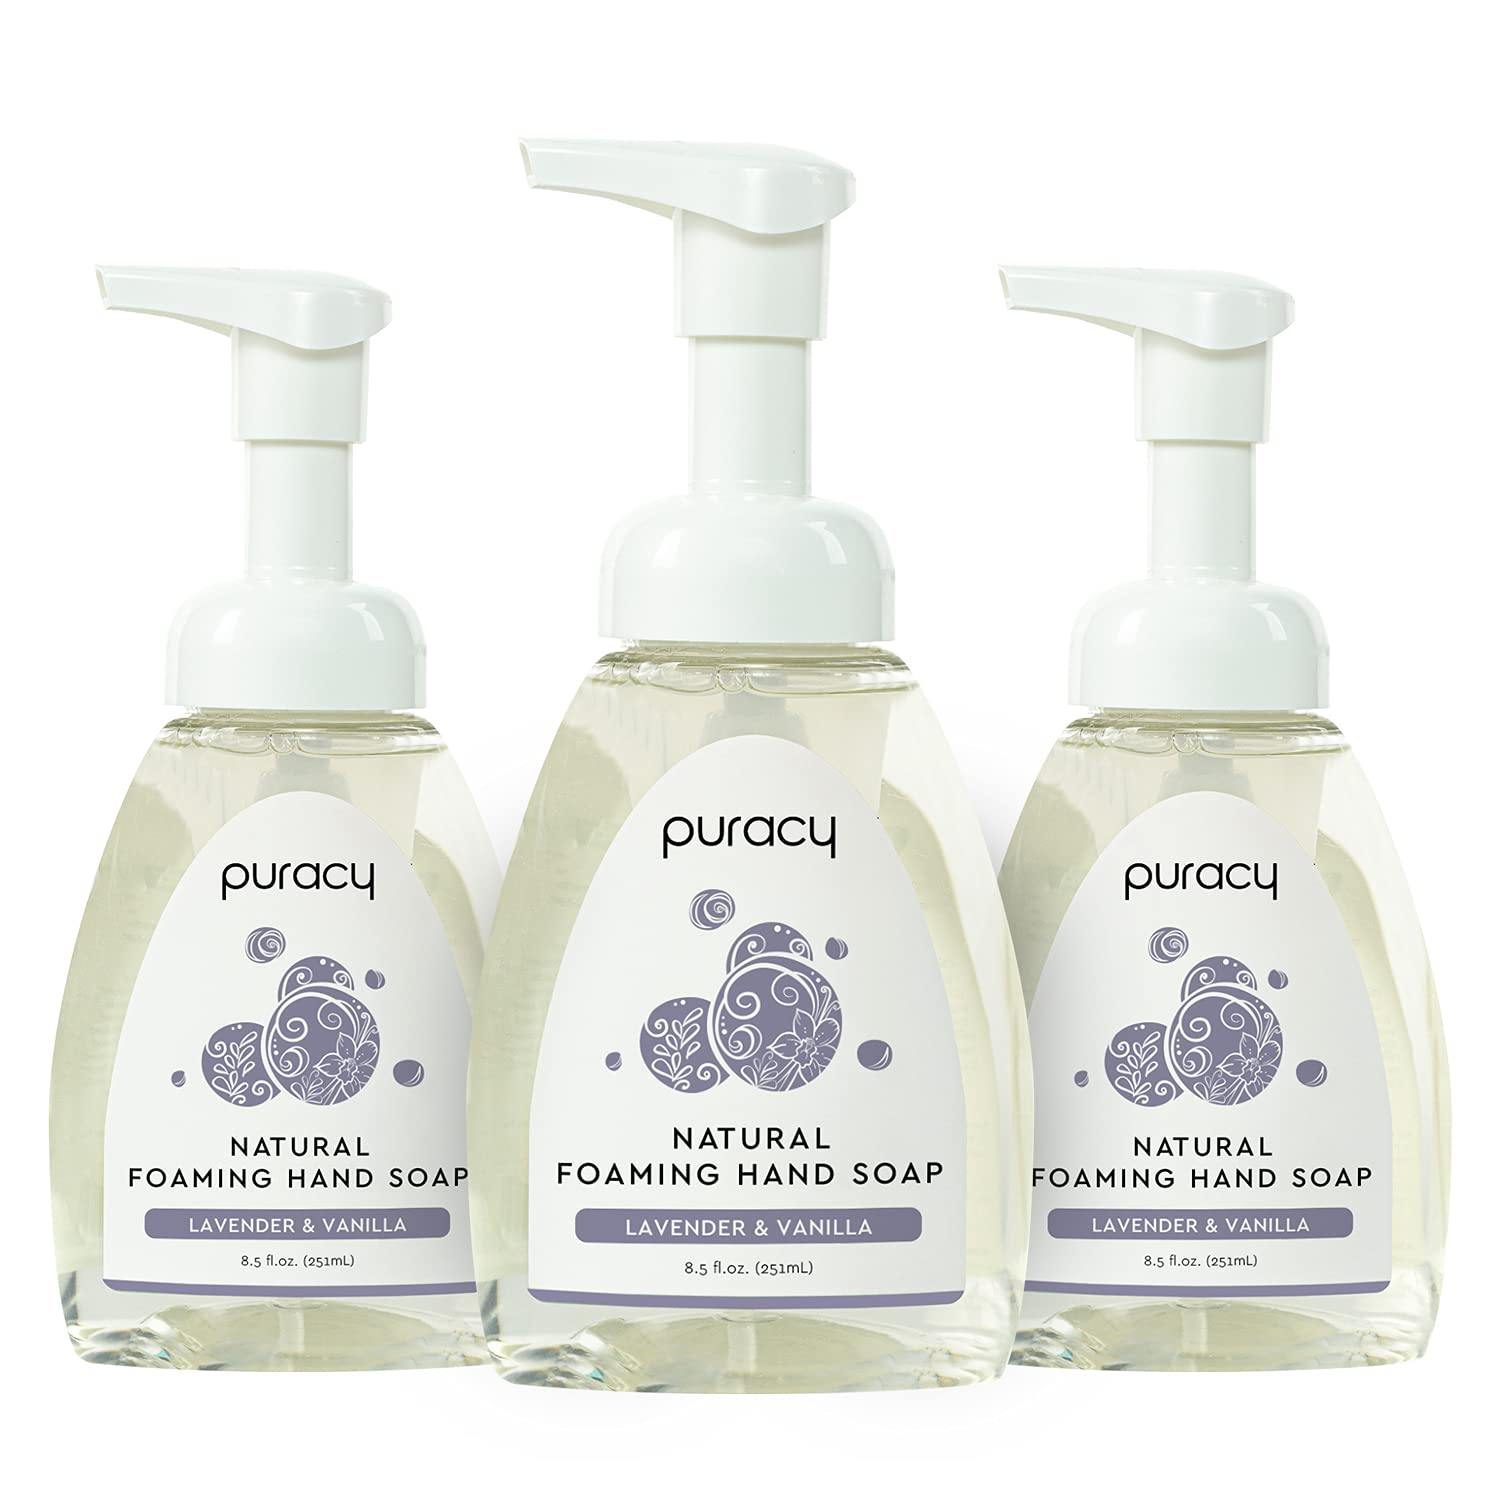 Puracy Natural Foaming Hand Soap, Moisturizing Hand Wash, Lavender & Vanilla, 8.5 Ounce (Pack of 3)